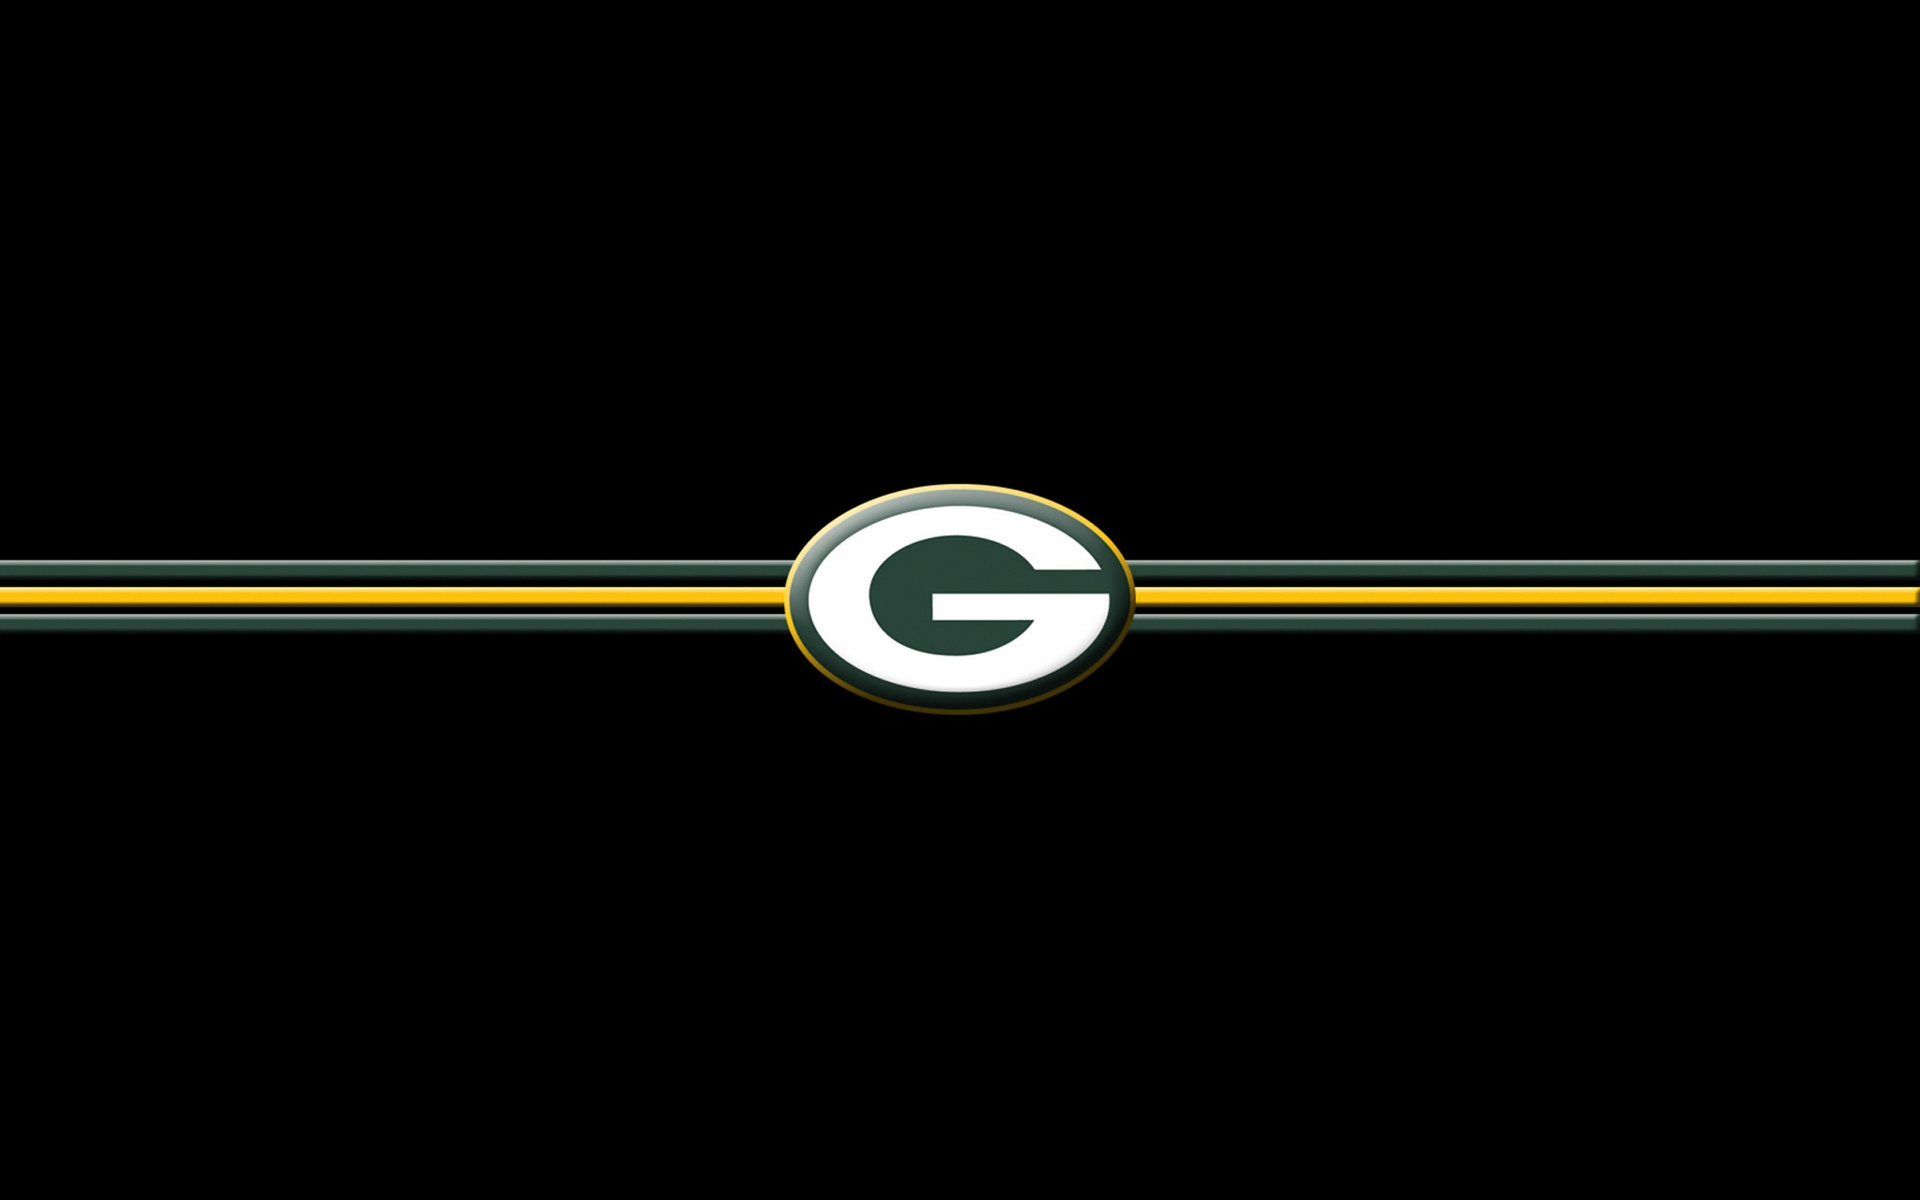 Green Bay Packers Wallpaper >> Green Bay Packers Archives - HDWallSource.com